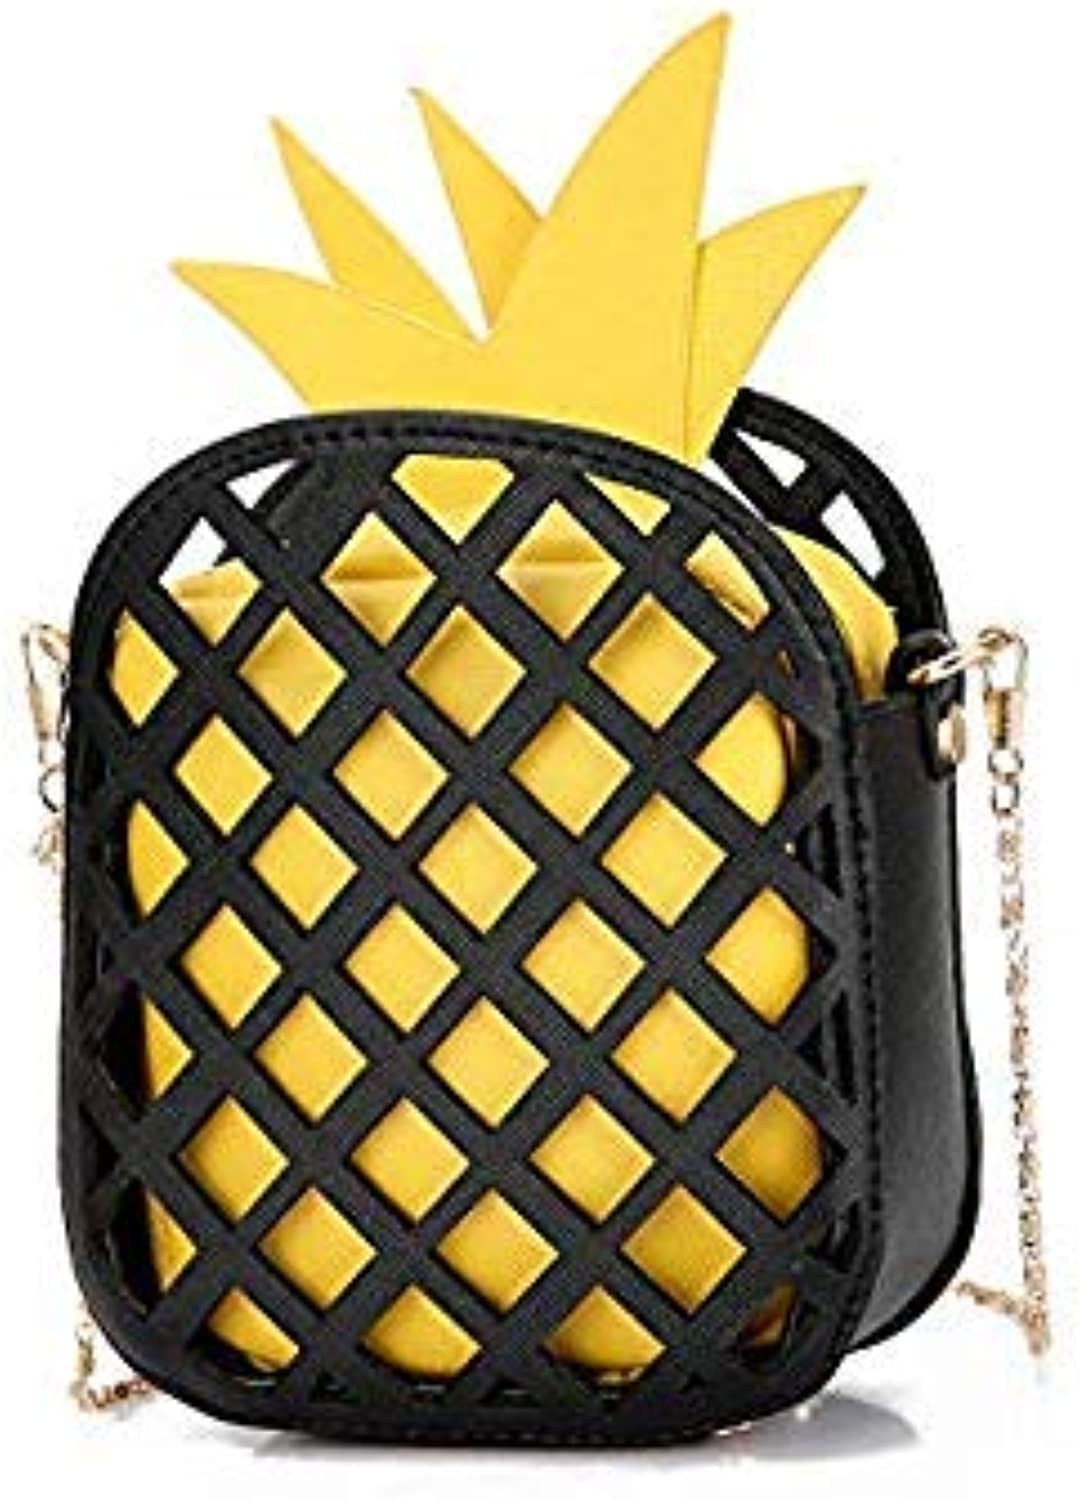 Bloomerang Small Bag Women Shoulder Ladies Handbag Female Messenger Rattan Bag Crossbody Bags for Women 2018 Torebki Damskie Apple Flap Hot color yellow2